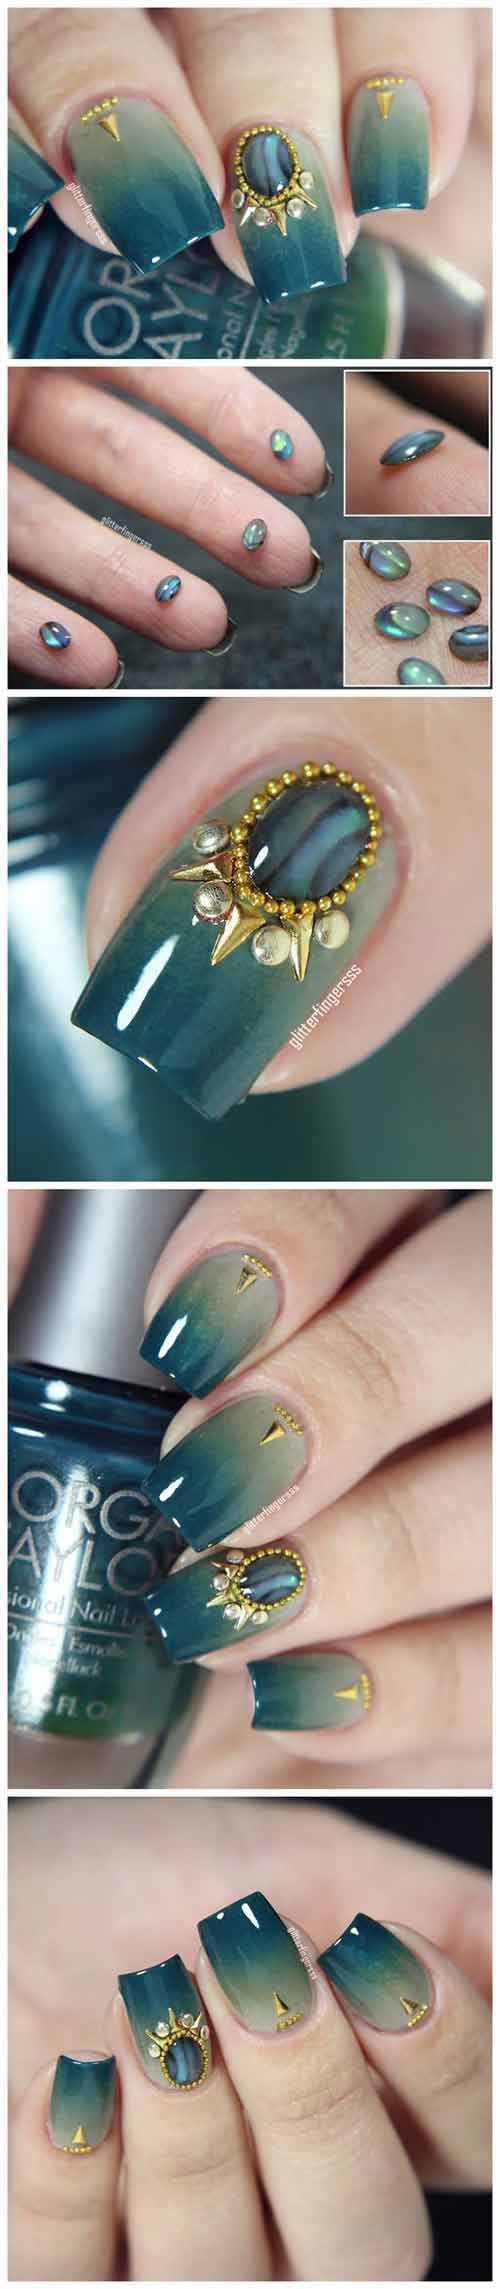 Beautiful 3D Nail Art Tutorials - 1. Emerald-Toned 3D Nails